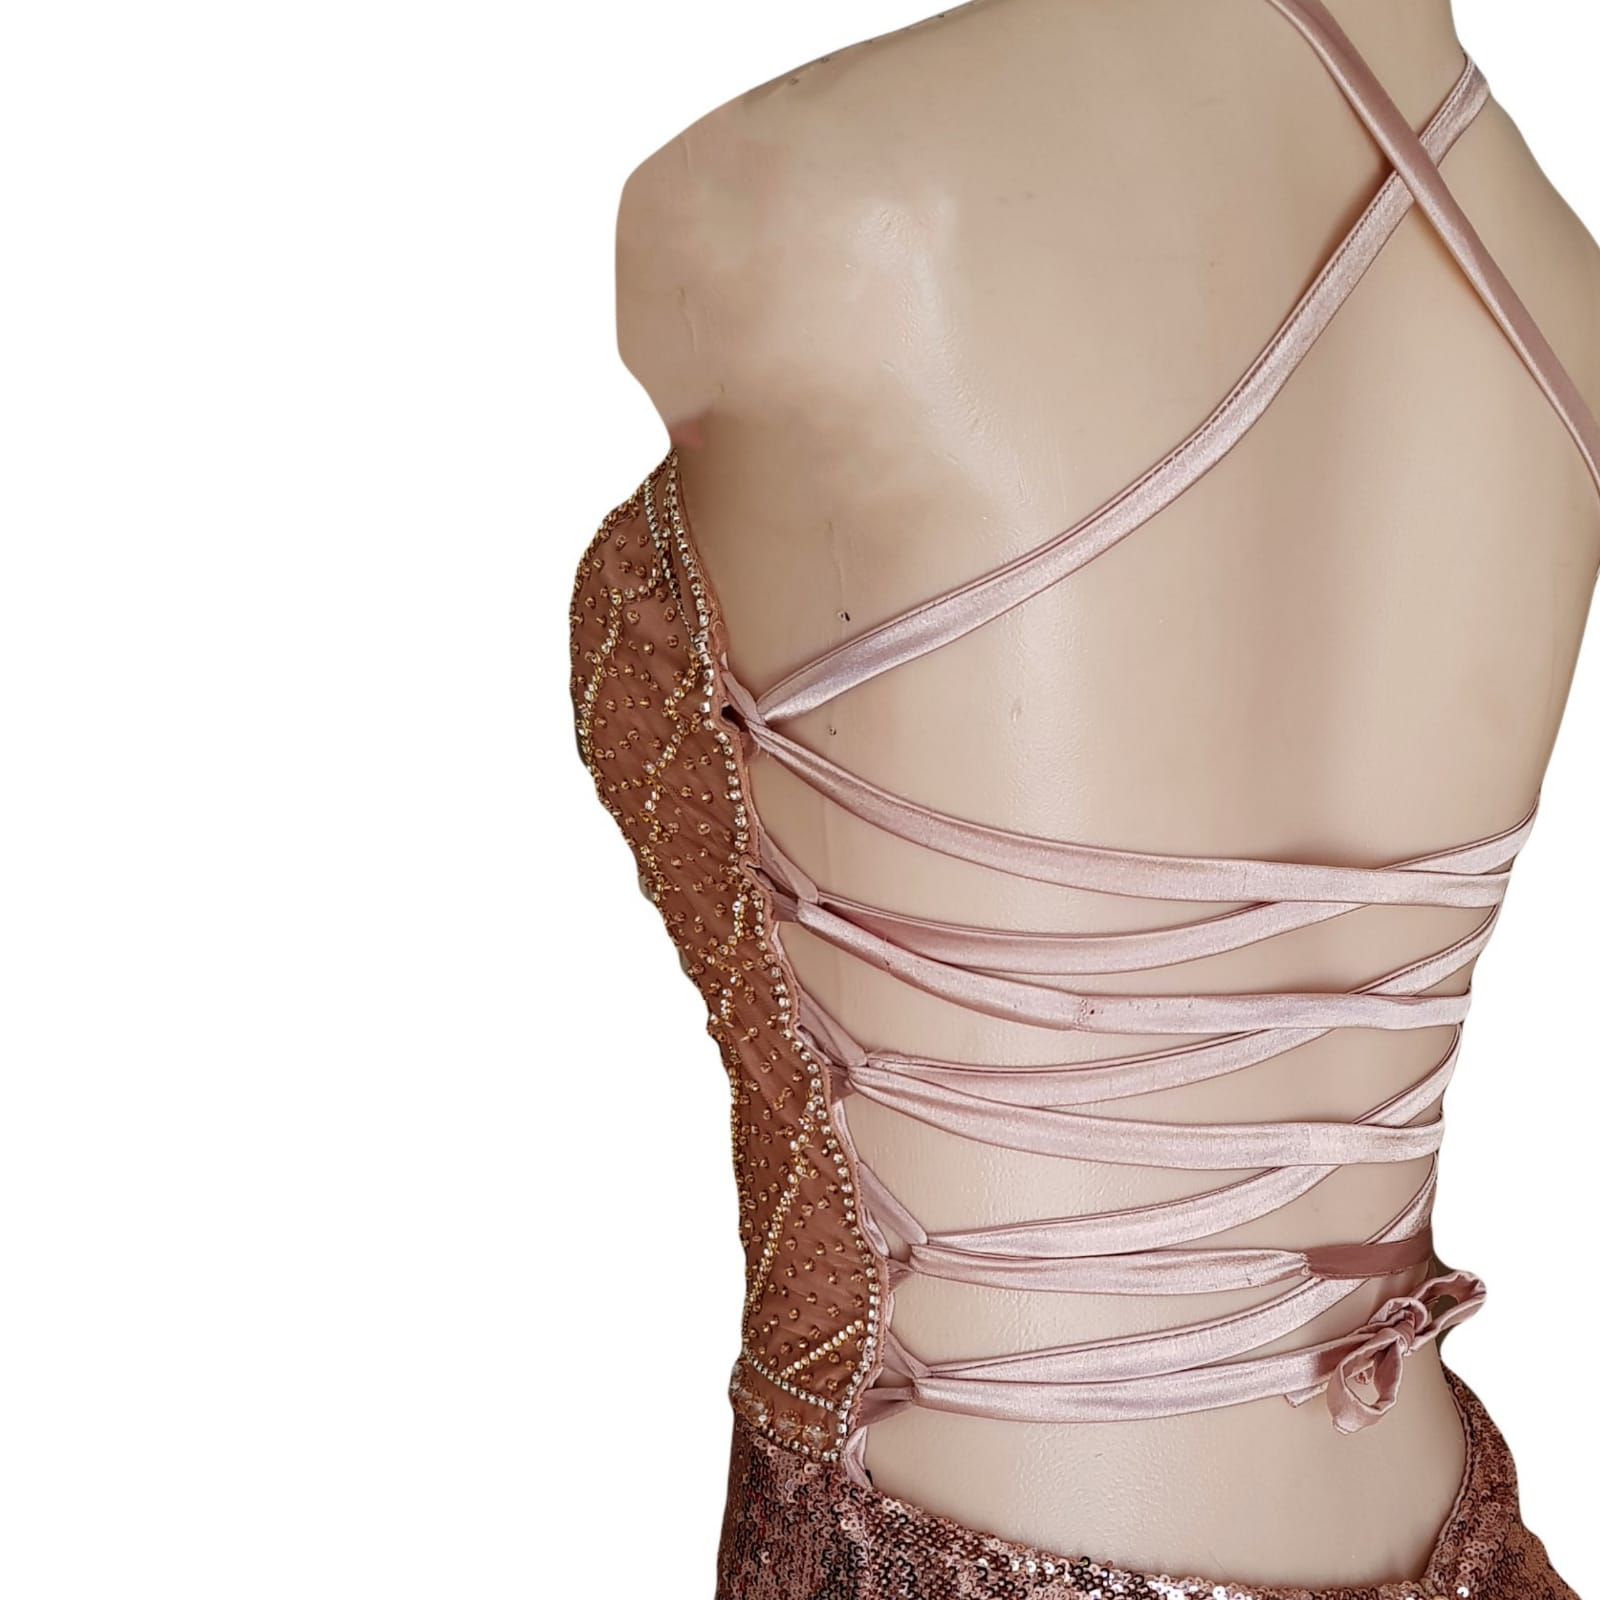 Rose gold sequins beaded matric dance dress with a beaded bodice 8 rose gold sequins beaded matric dance dress with a beaded bodice, an open lace-up back. High slit and a train.